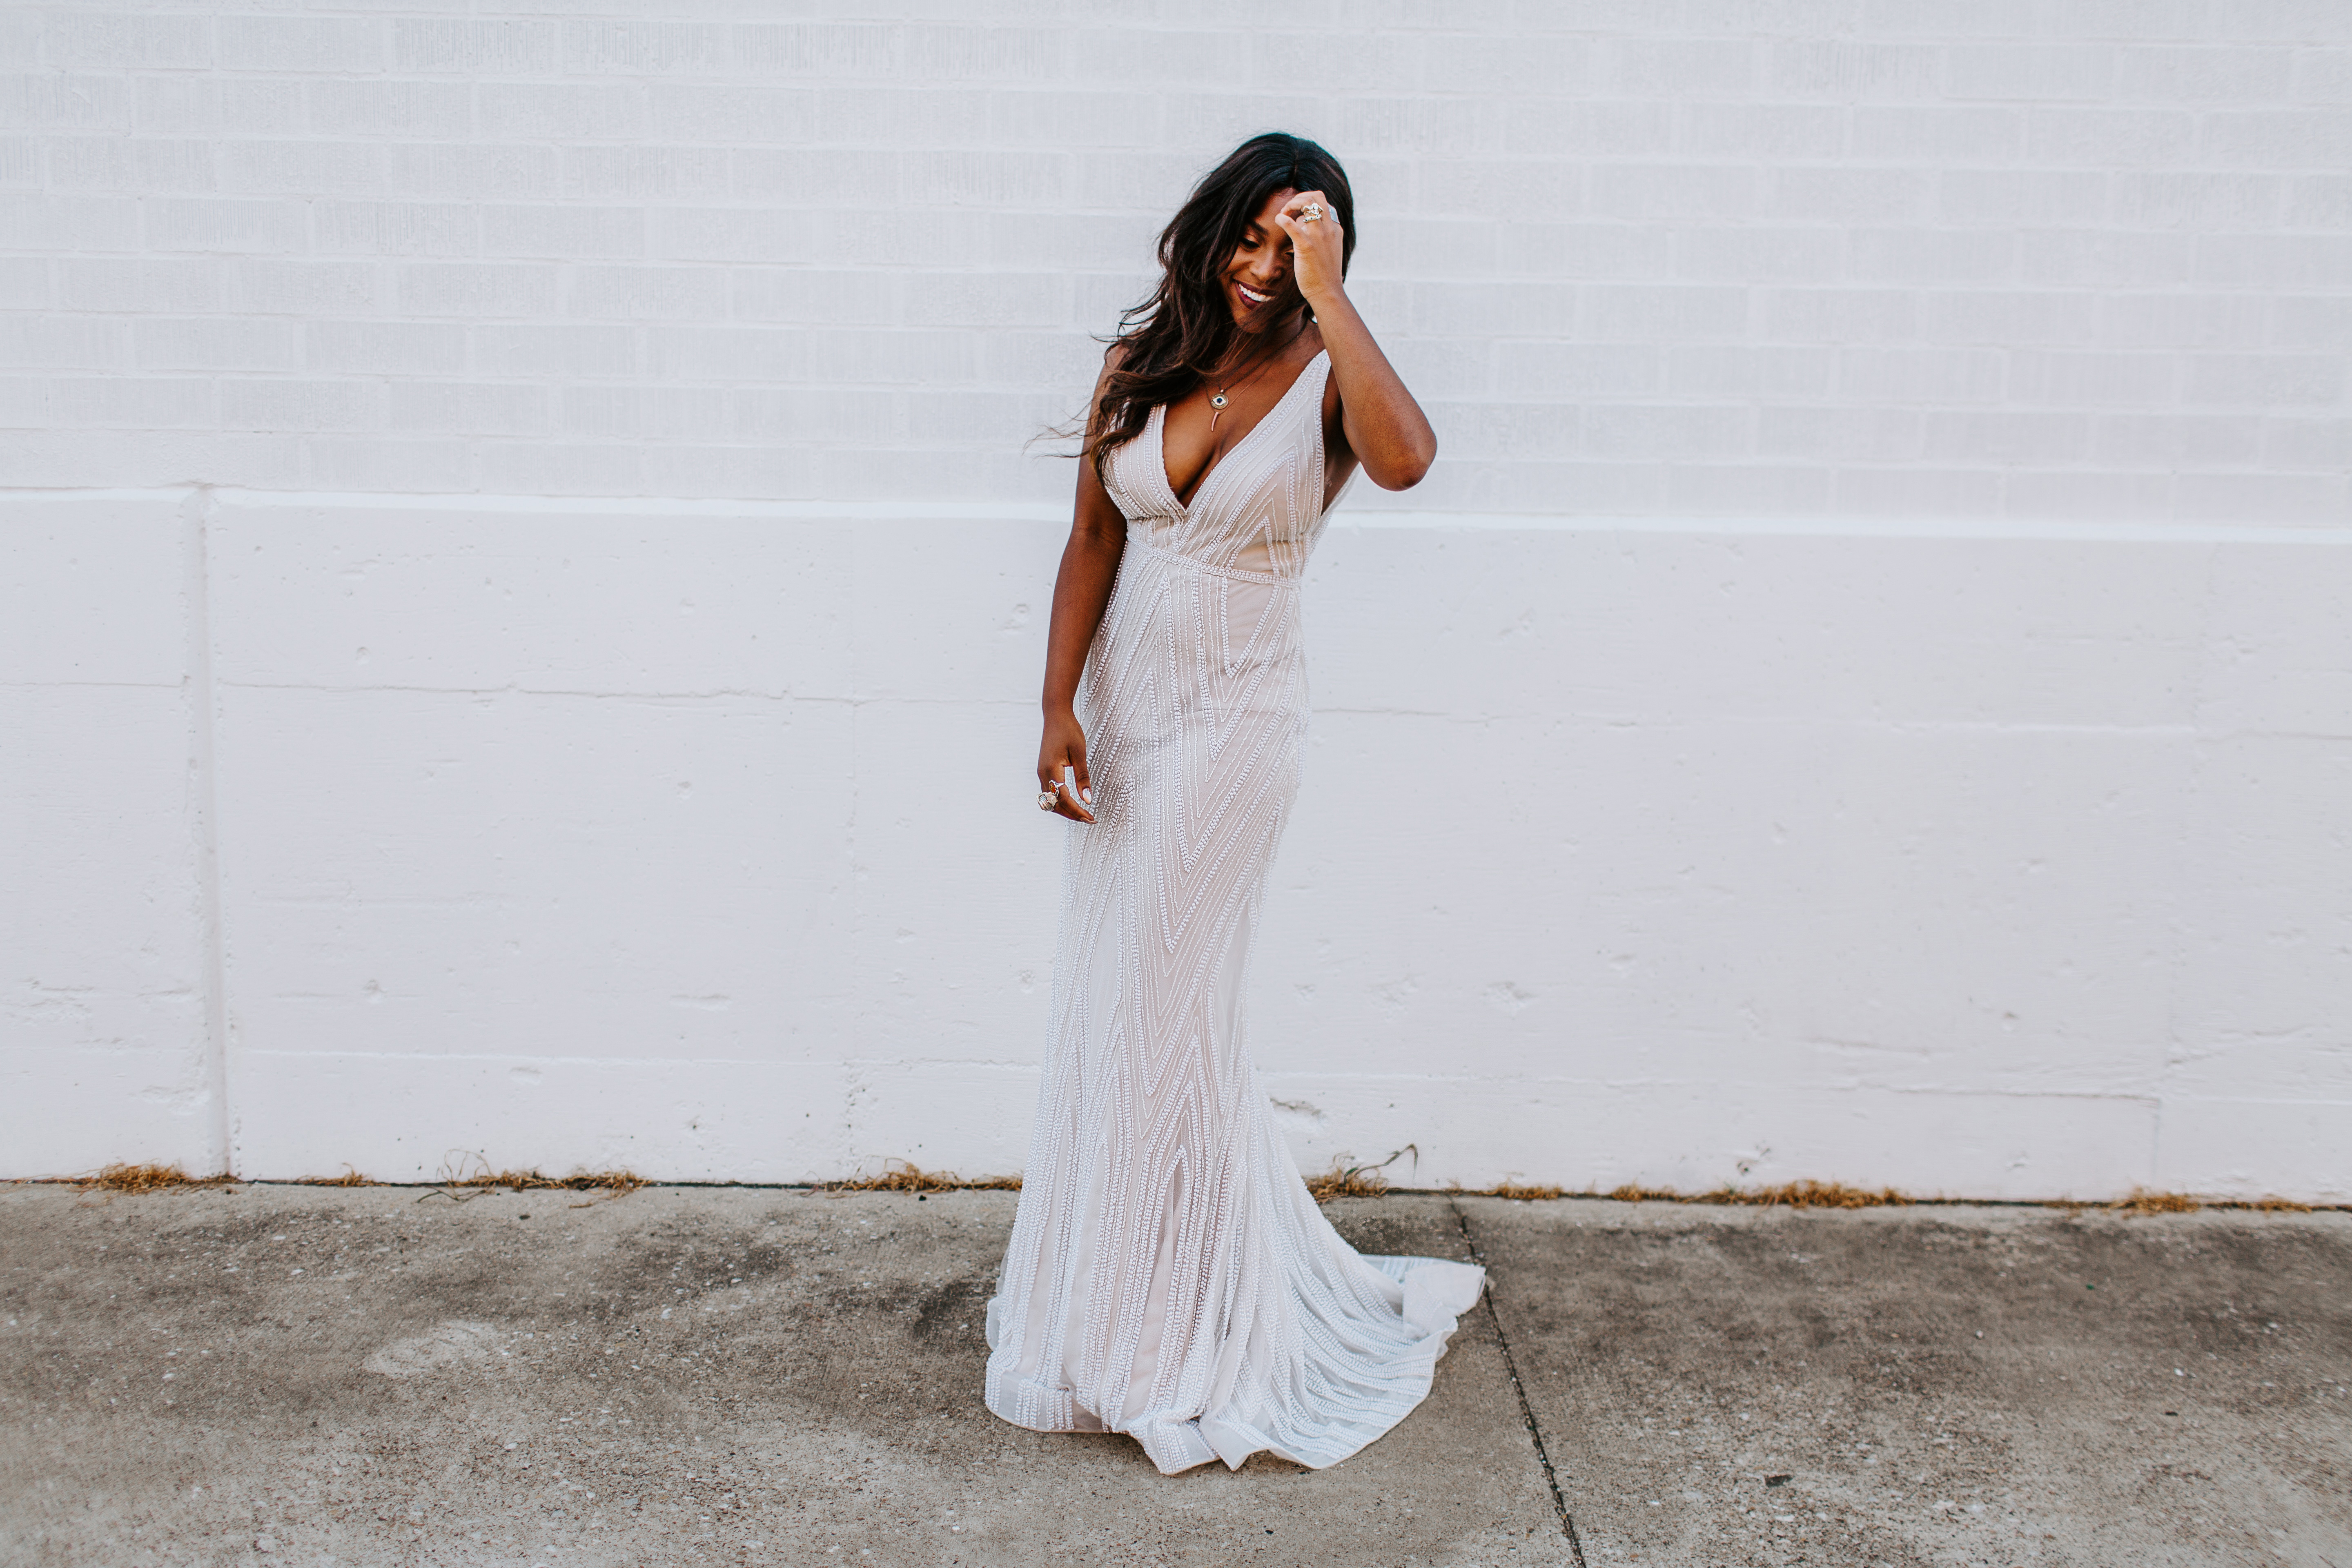 Karis Renee at A & Bé Bridal shop wedding dresses